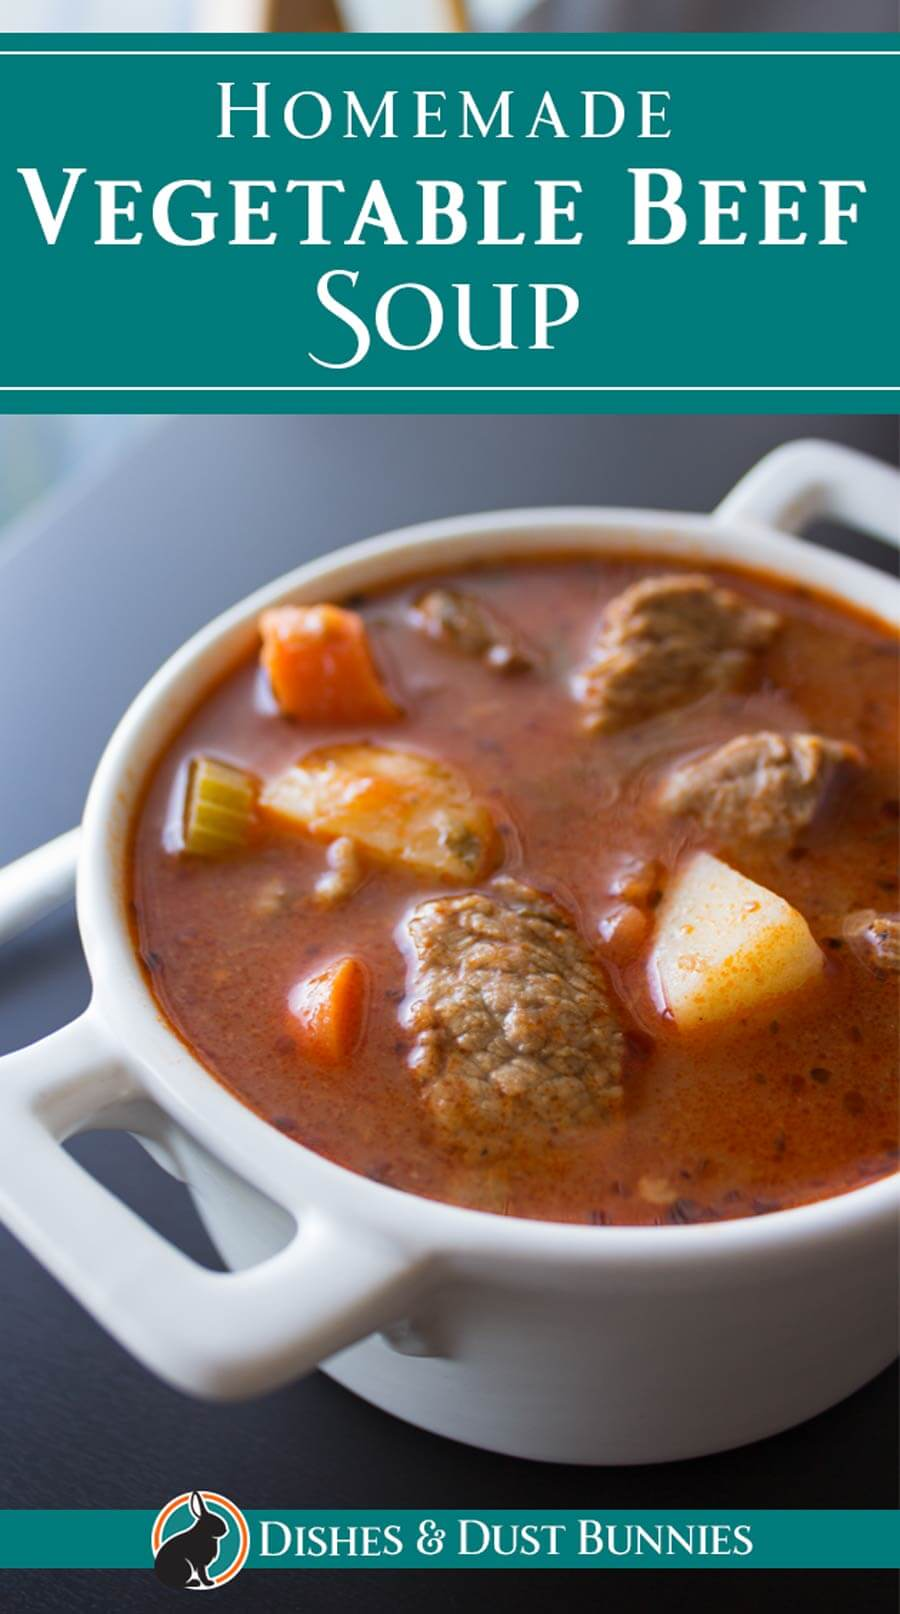 Homemade Vegetable Beef Soup via @mvdustbunnies